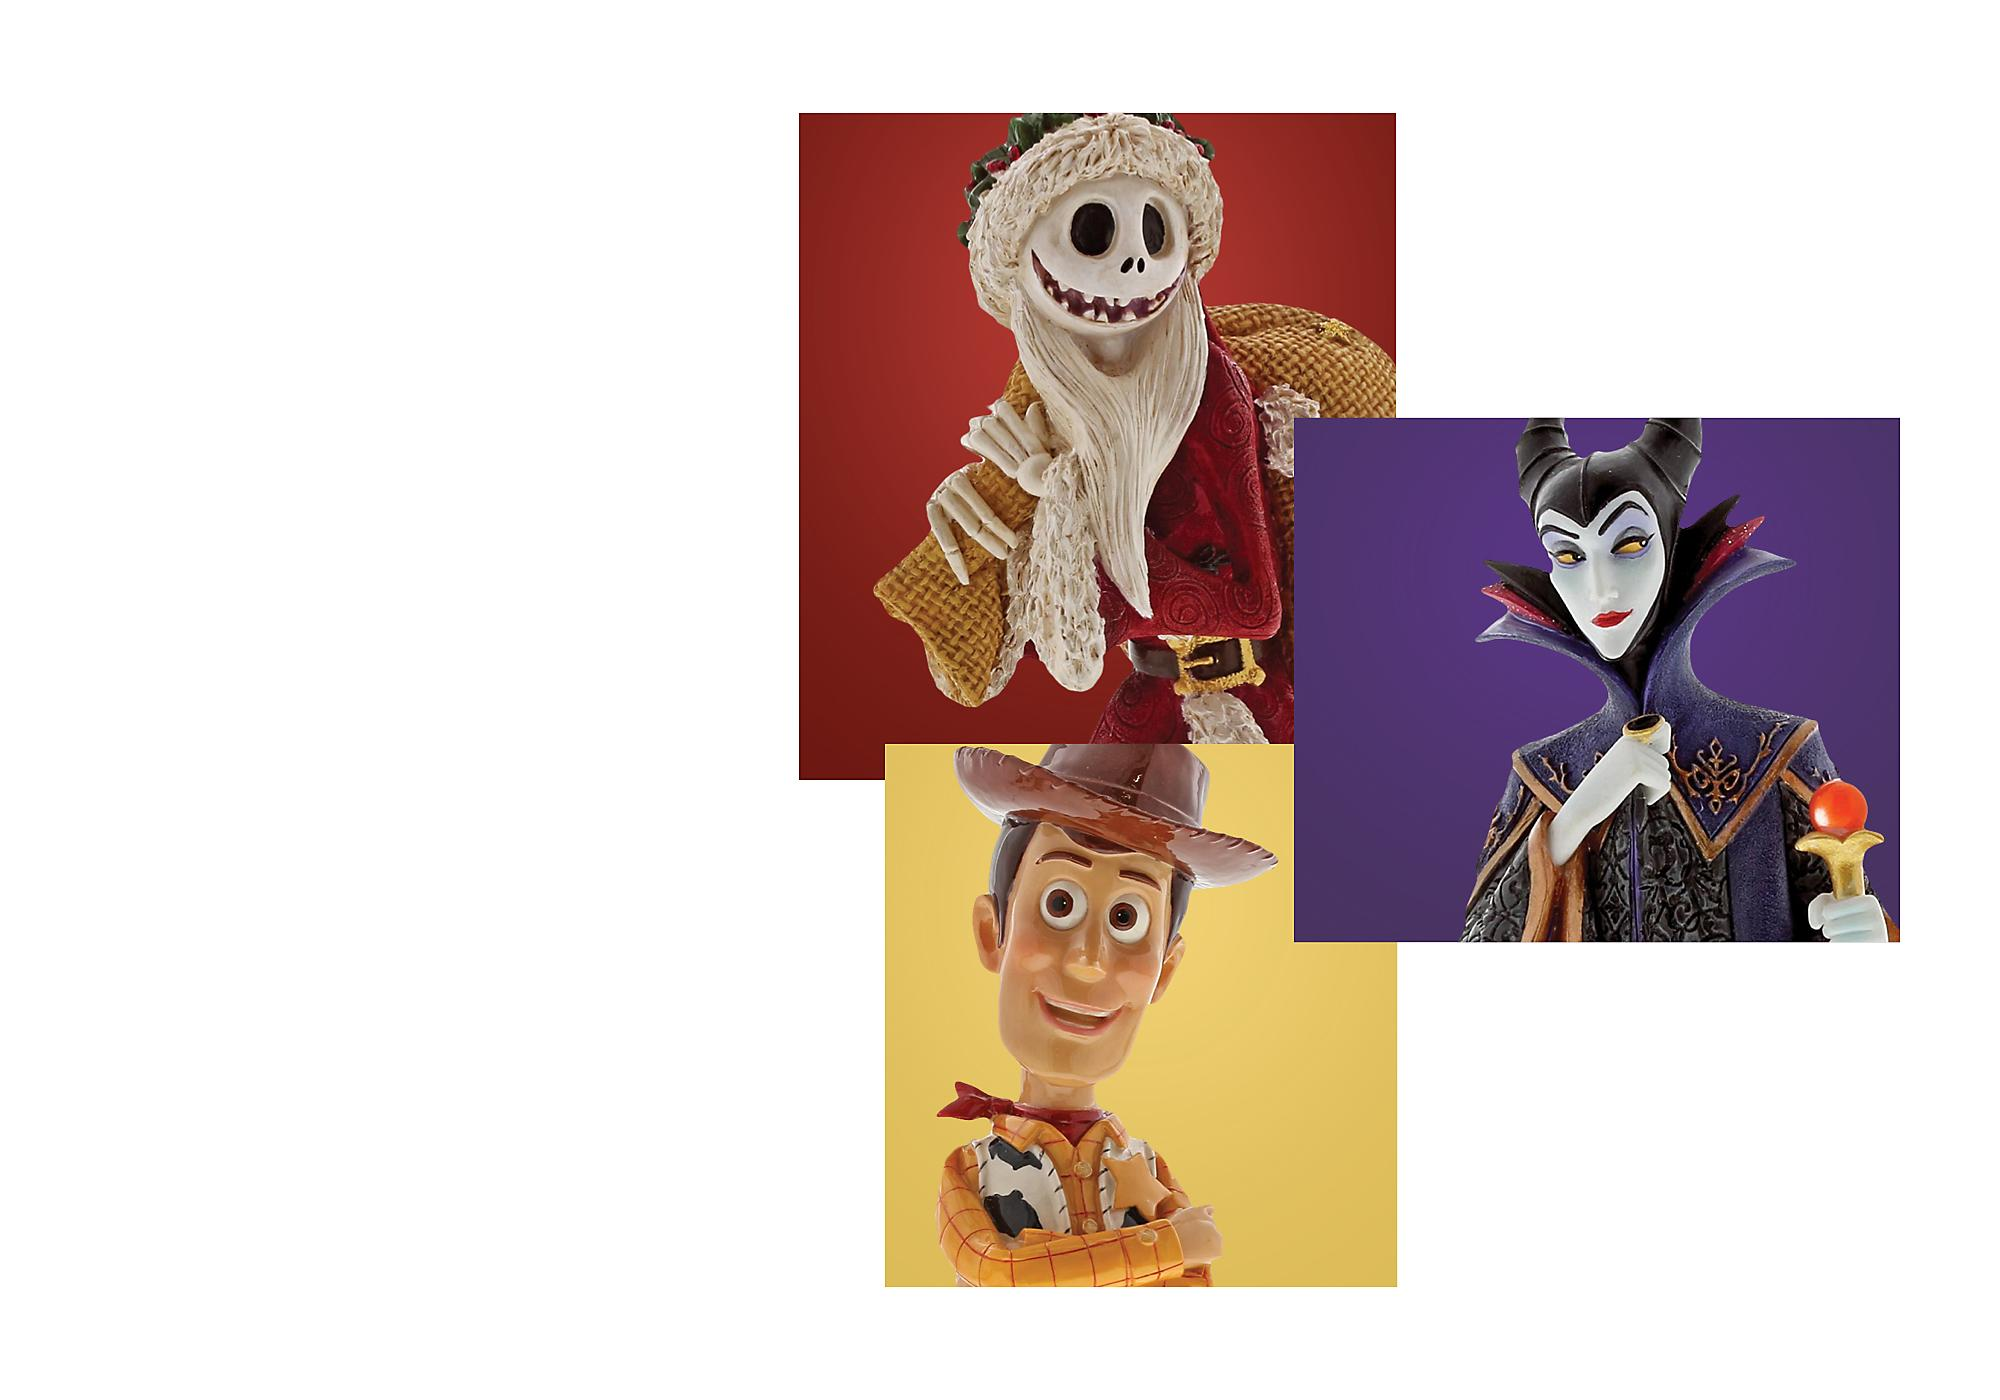 Complete Your Collection Collectible figurines designed by Jim Shore combines the magic of Disney with traditional motifs of handmade folk art. SHOP NOW